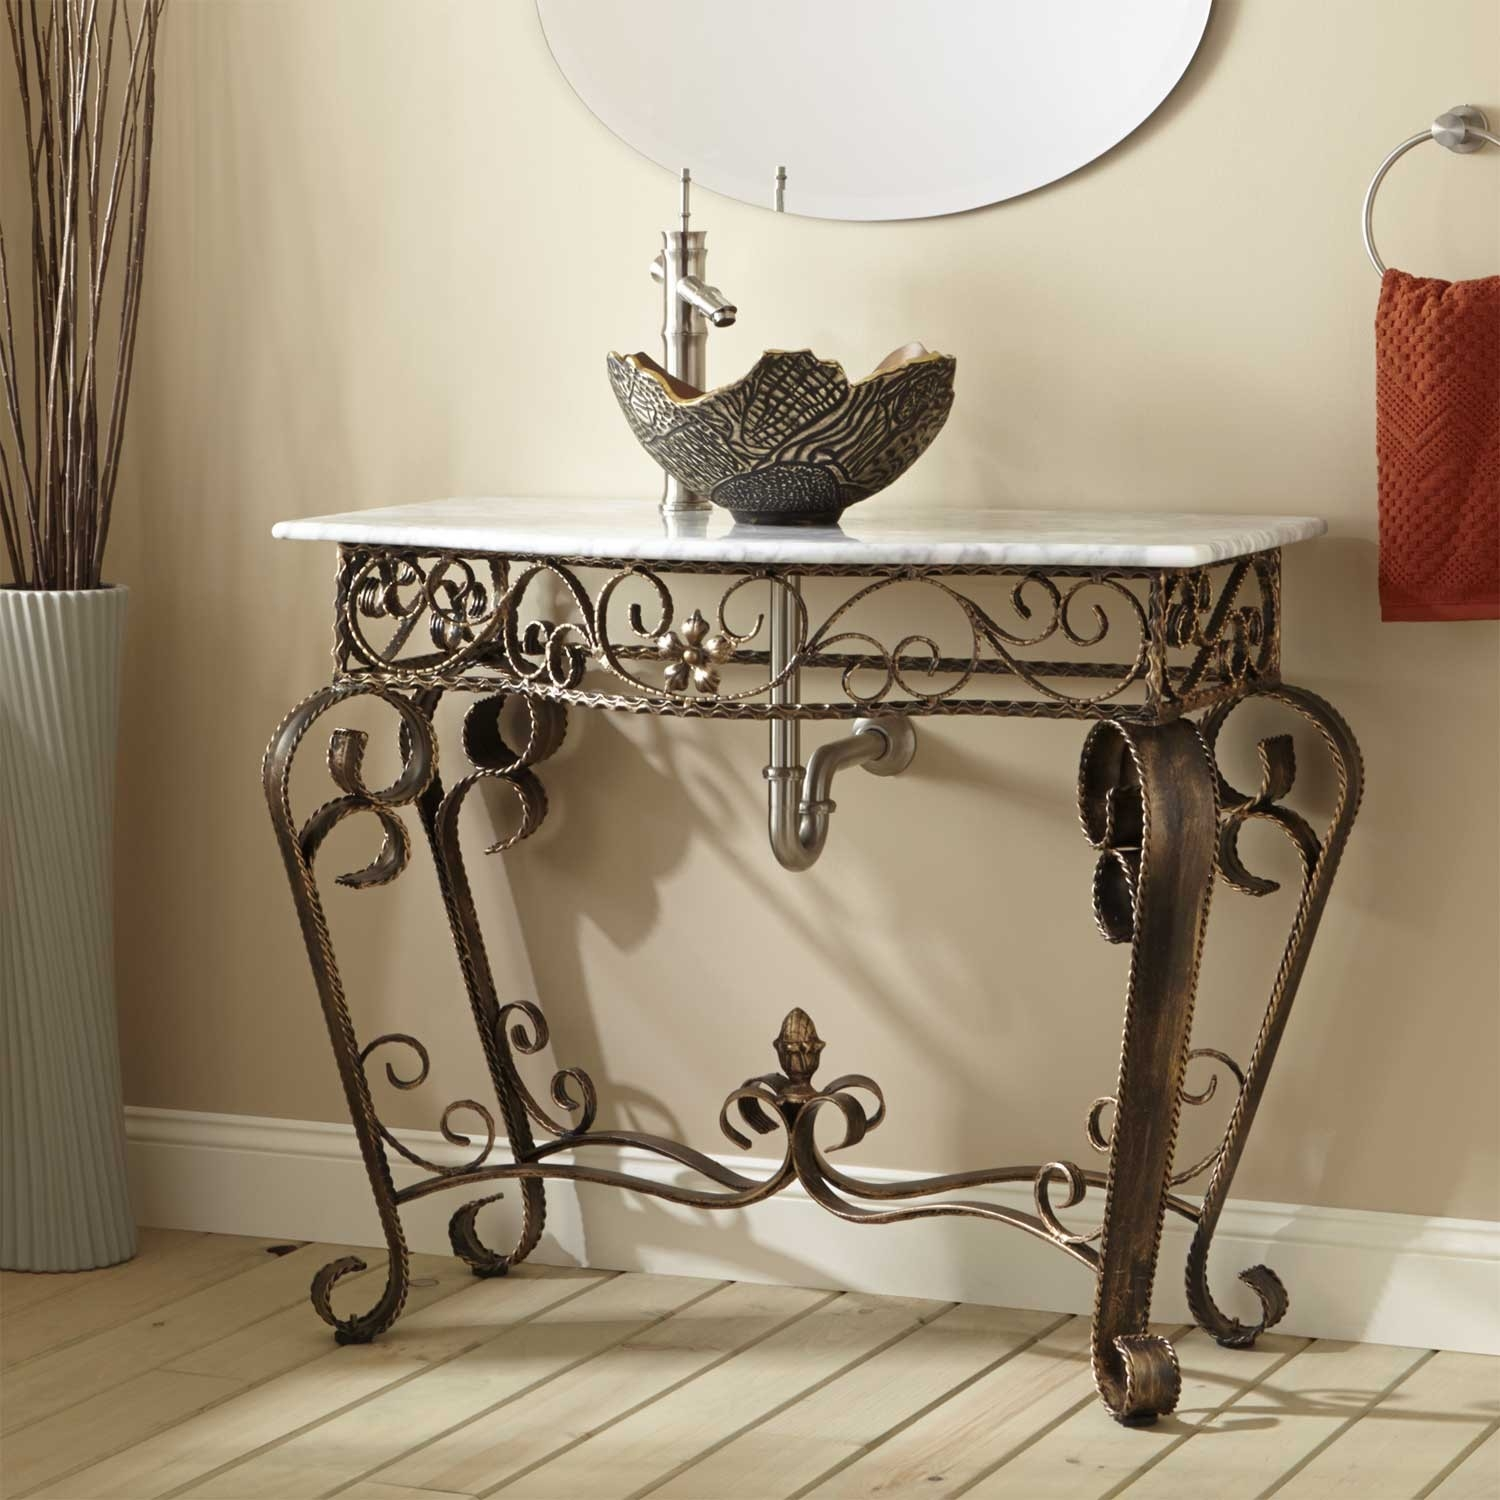 Wrought Iron Bath Vanity